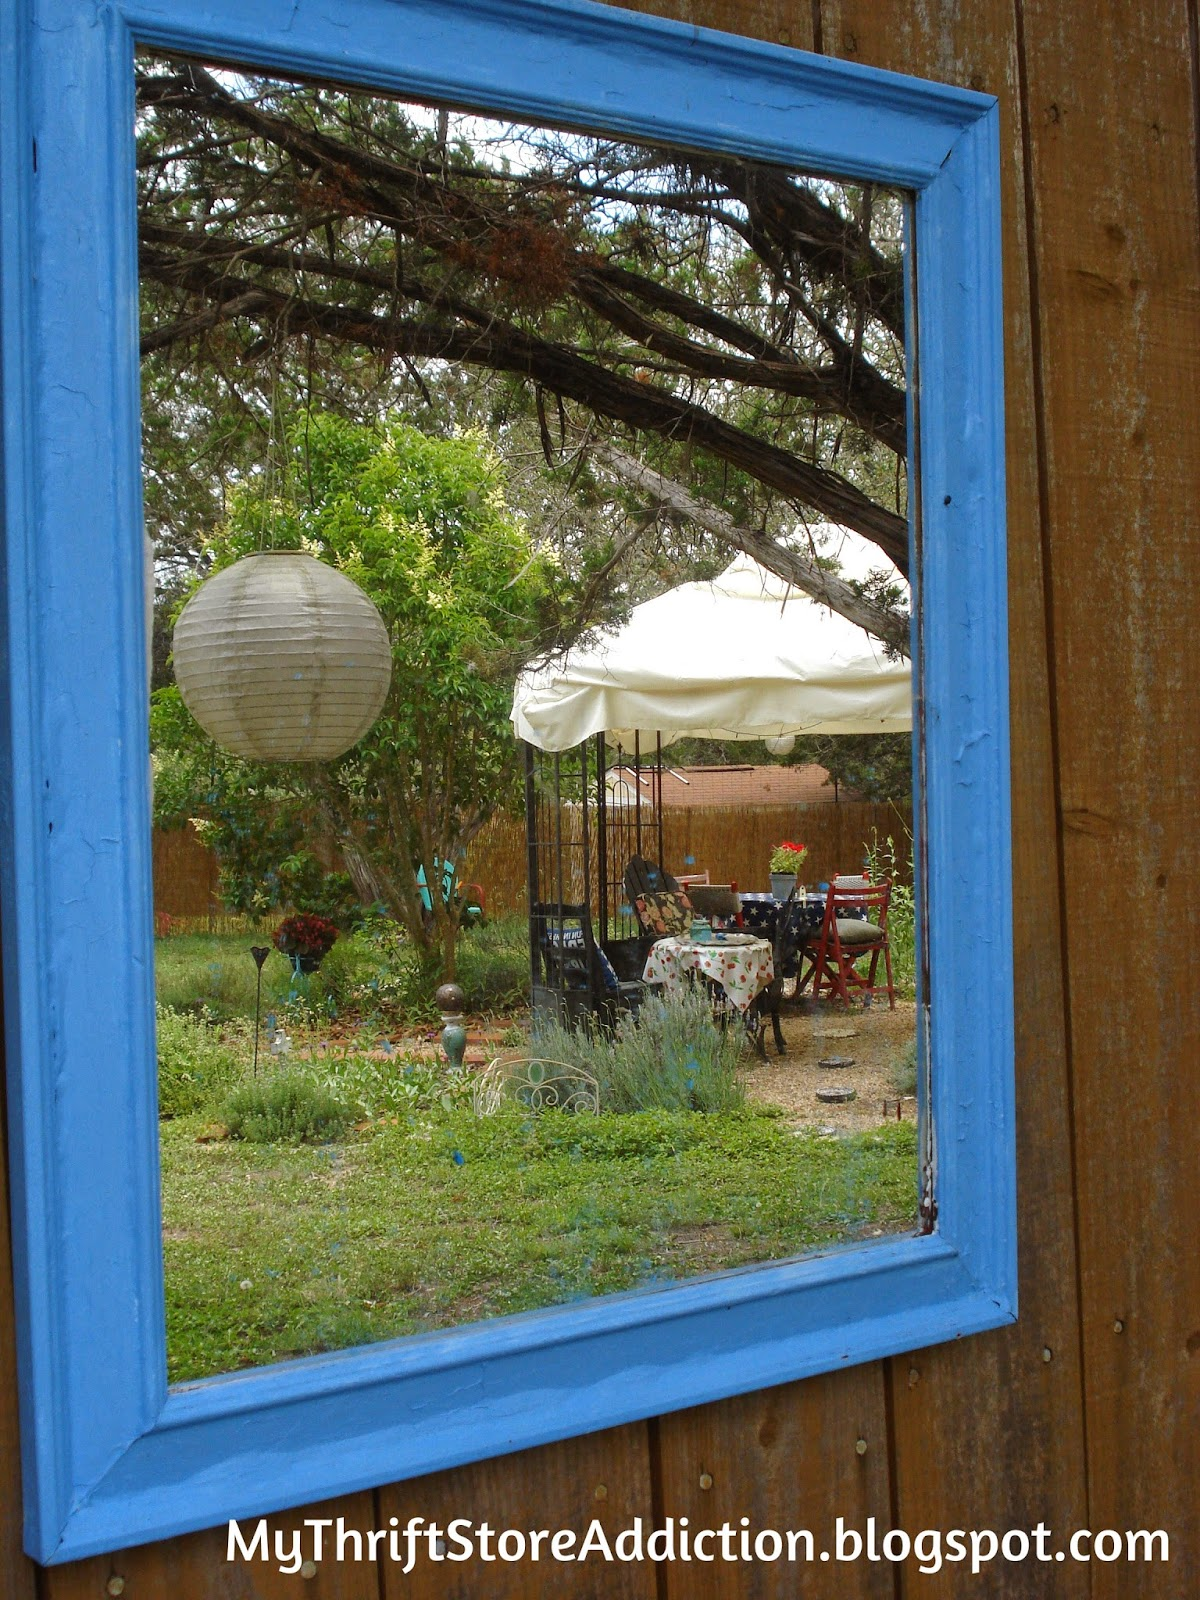 Welcome to Secret Garden: My Creative Space! mythriftstoreaddiction.blogspot.com A blue framed mirror reflects a view of the gazebo